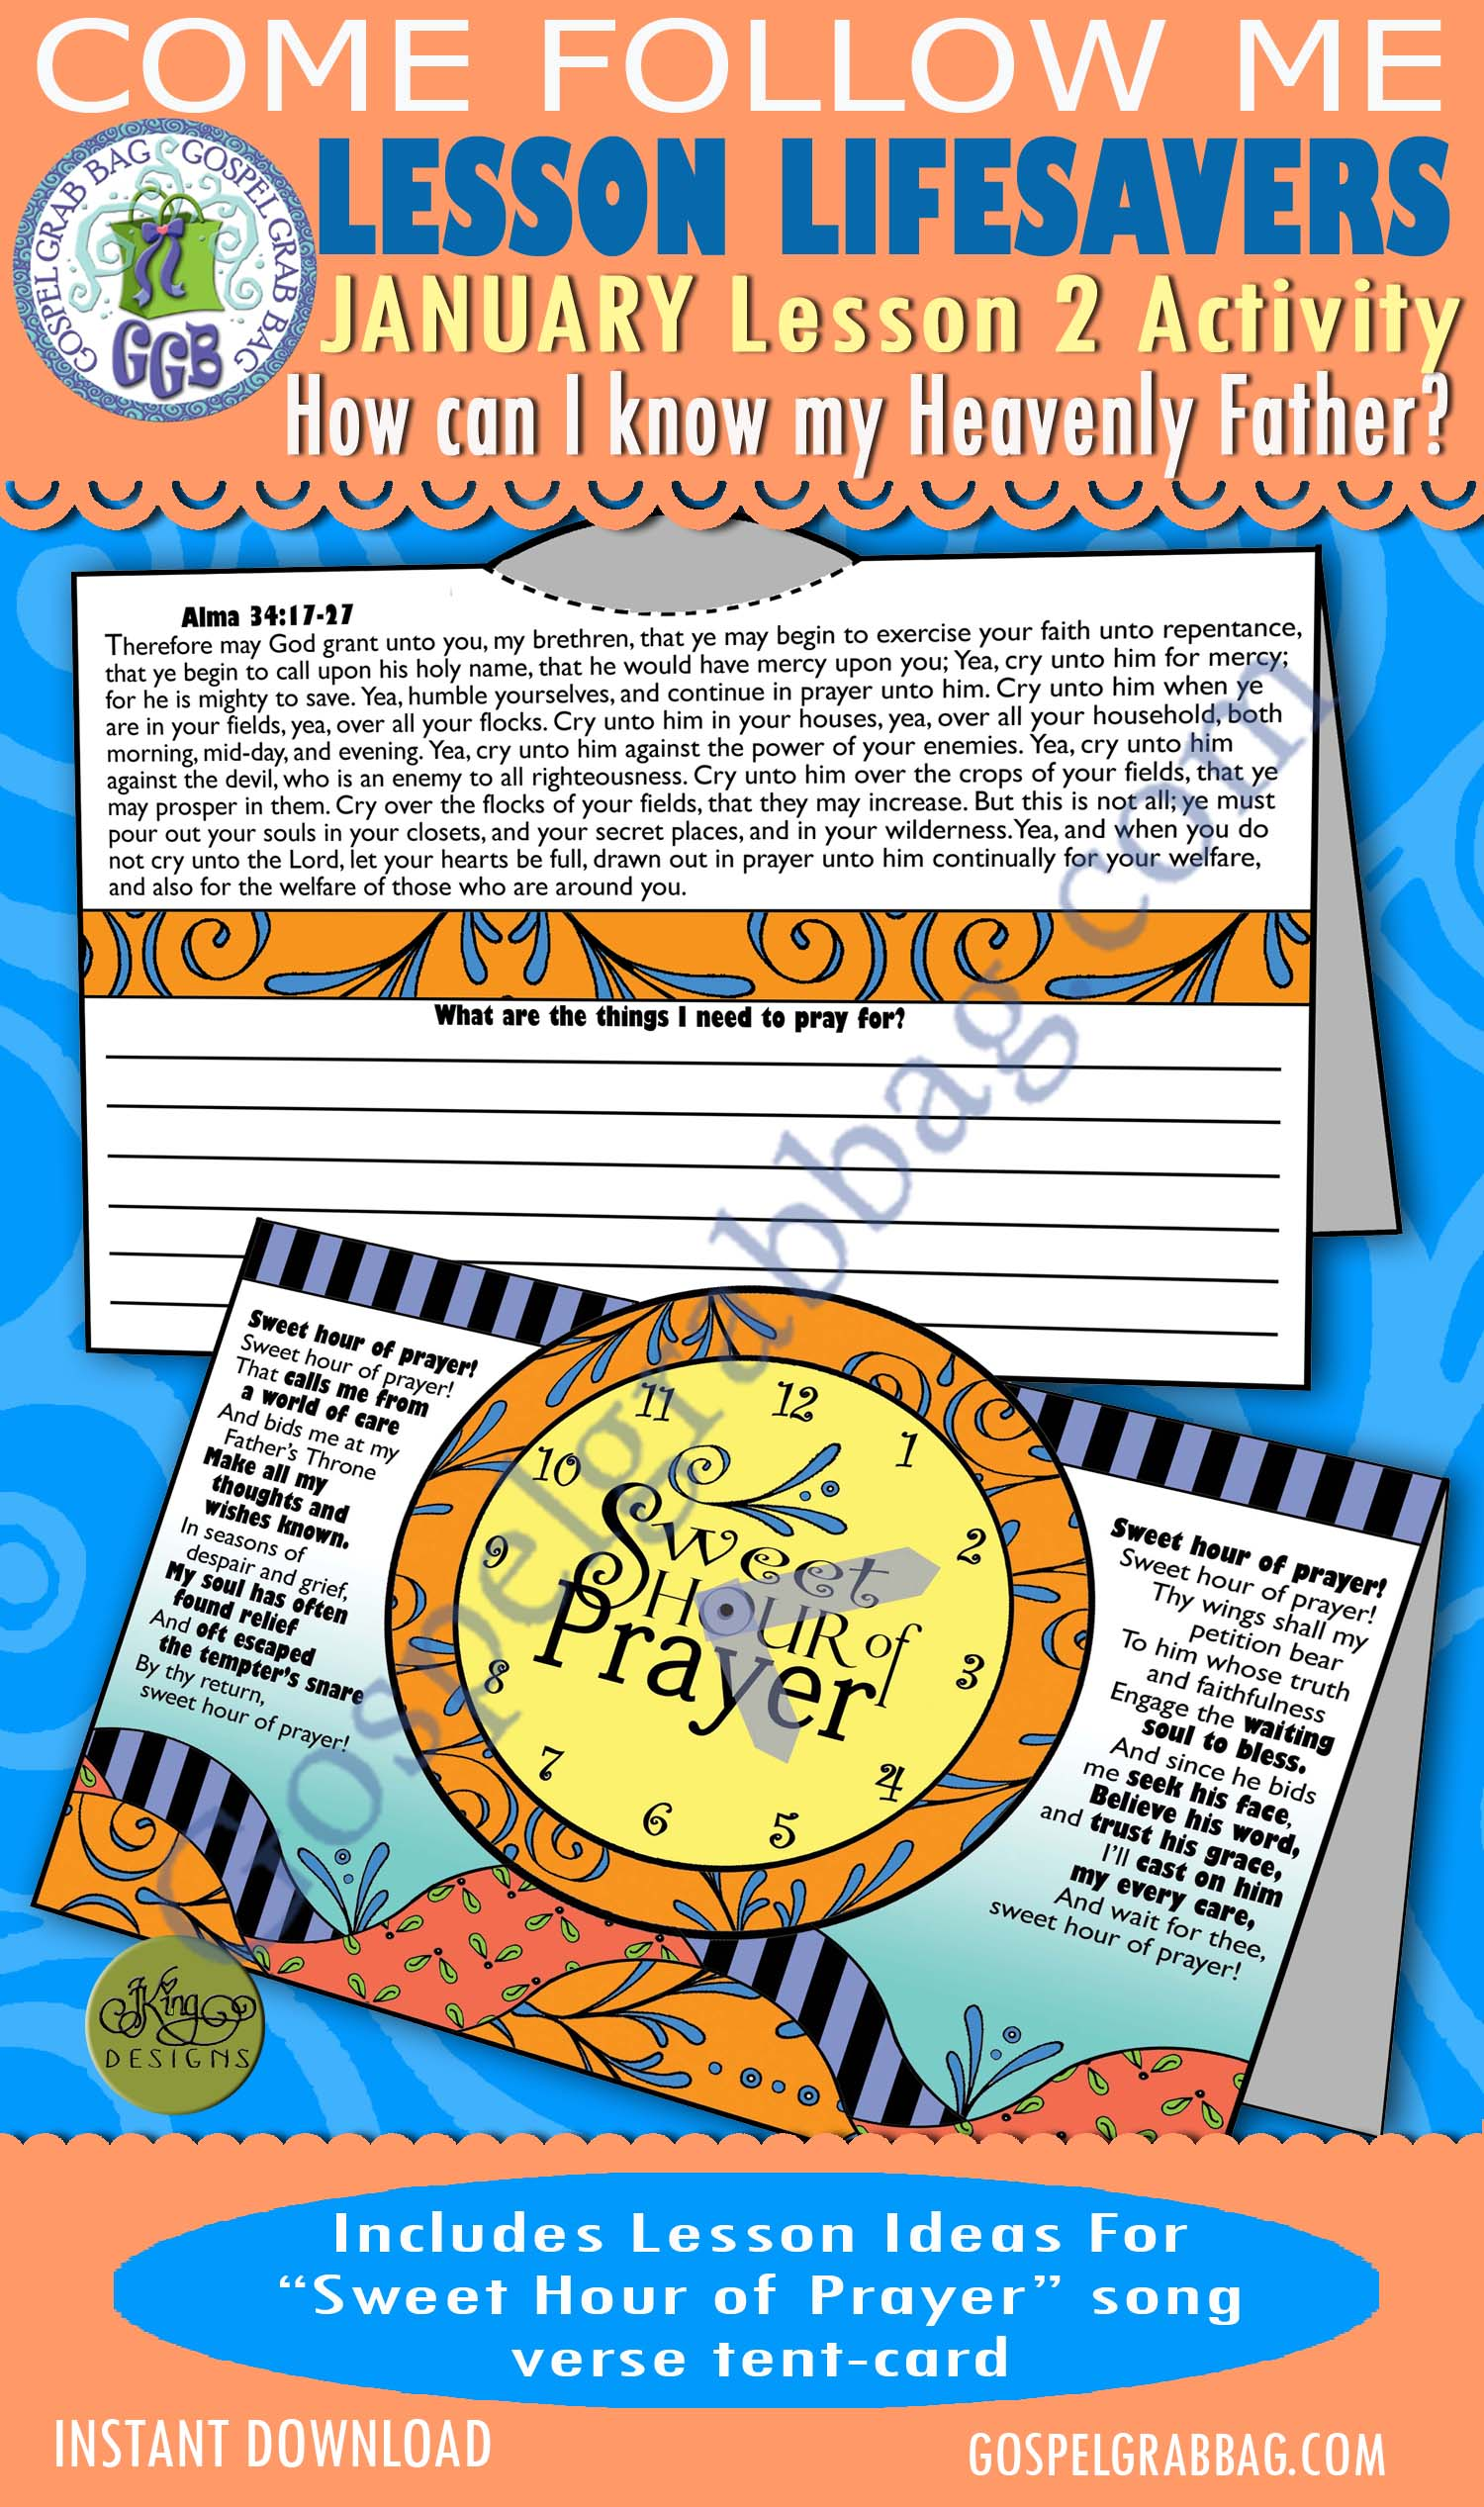 """$1.75 January Lesson 2 - Come Follow Me """"How do I know my Heavenly Father?"""" ACTIVITY: Sweet Hour of Prayer verse prayer list"""